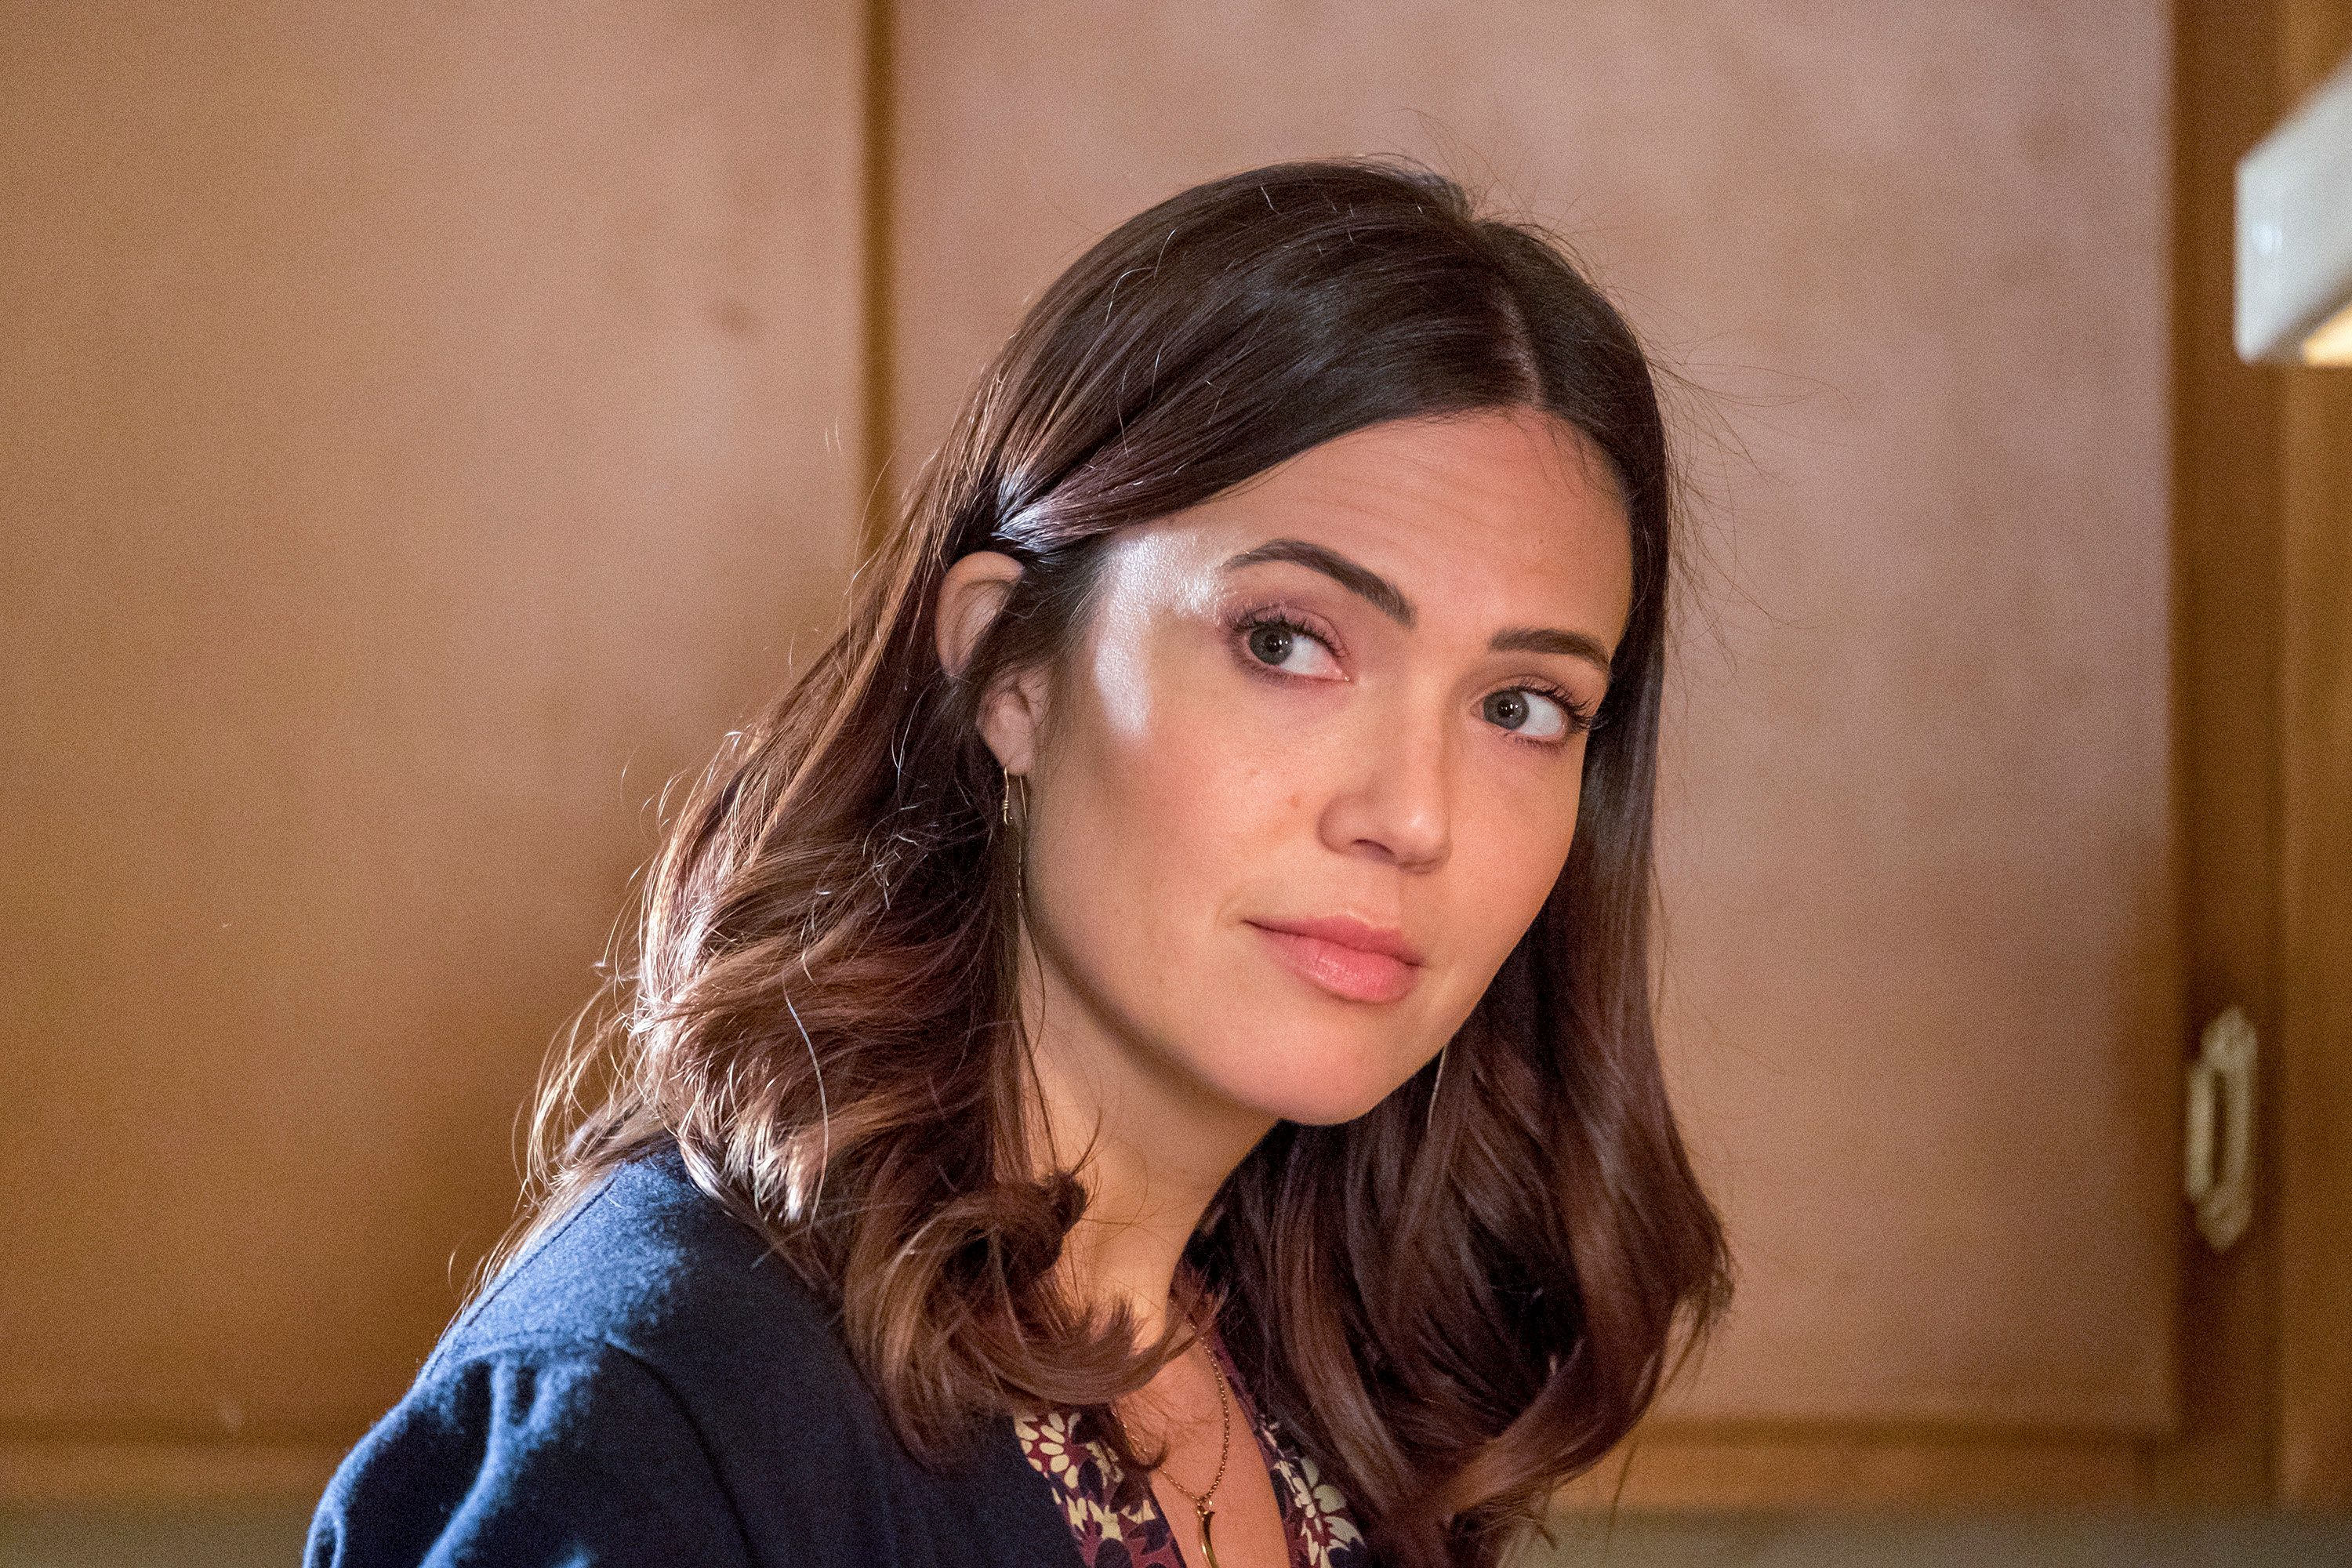 THIS IS US -- 'Songbird Road: Part One' Episode 311 -- Pictured: Mandy Moore as Rebecca -- (Photo by: Ron Batzdorff/NBC/NBCU Photo Bank via Getty Images)